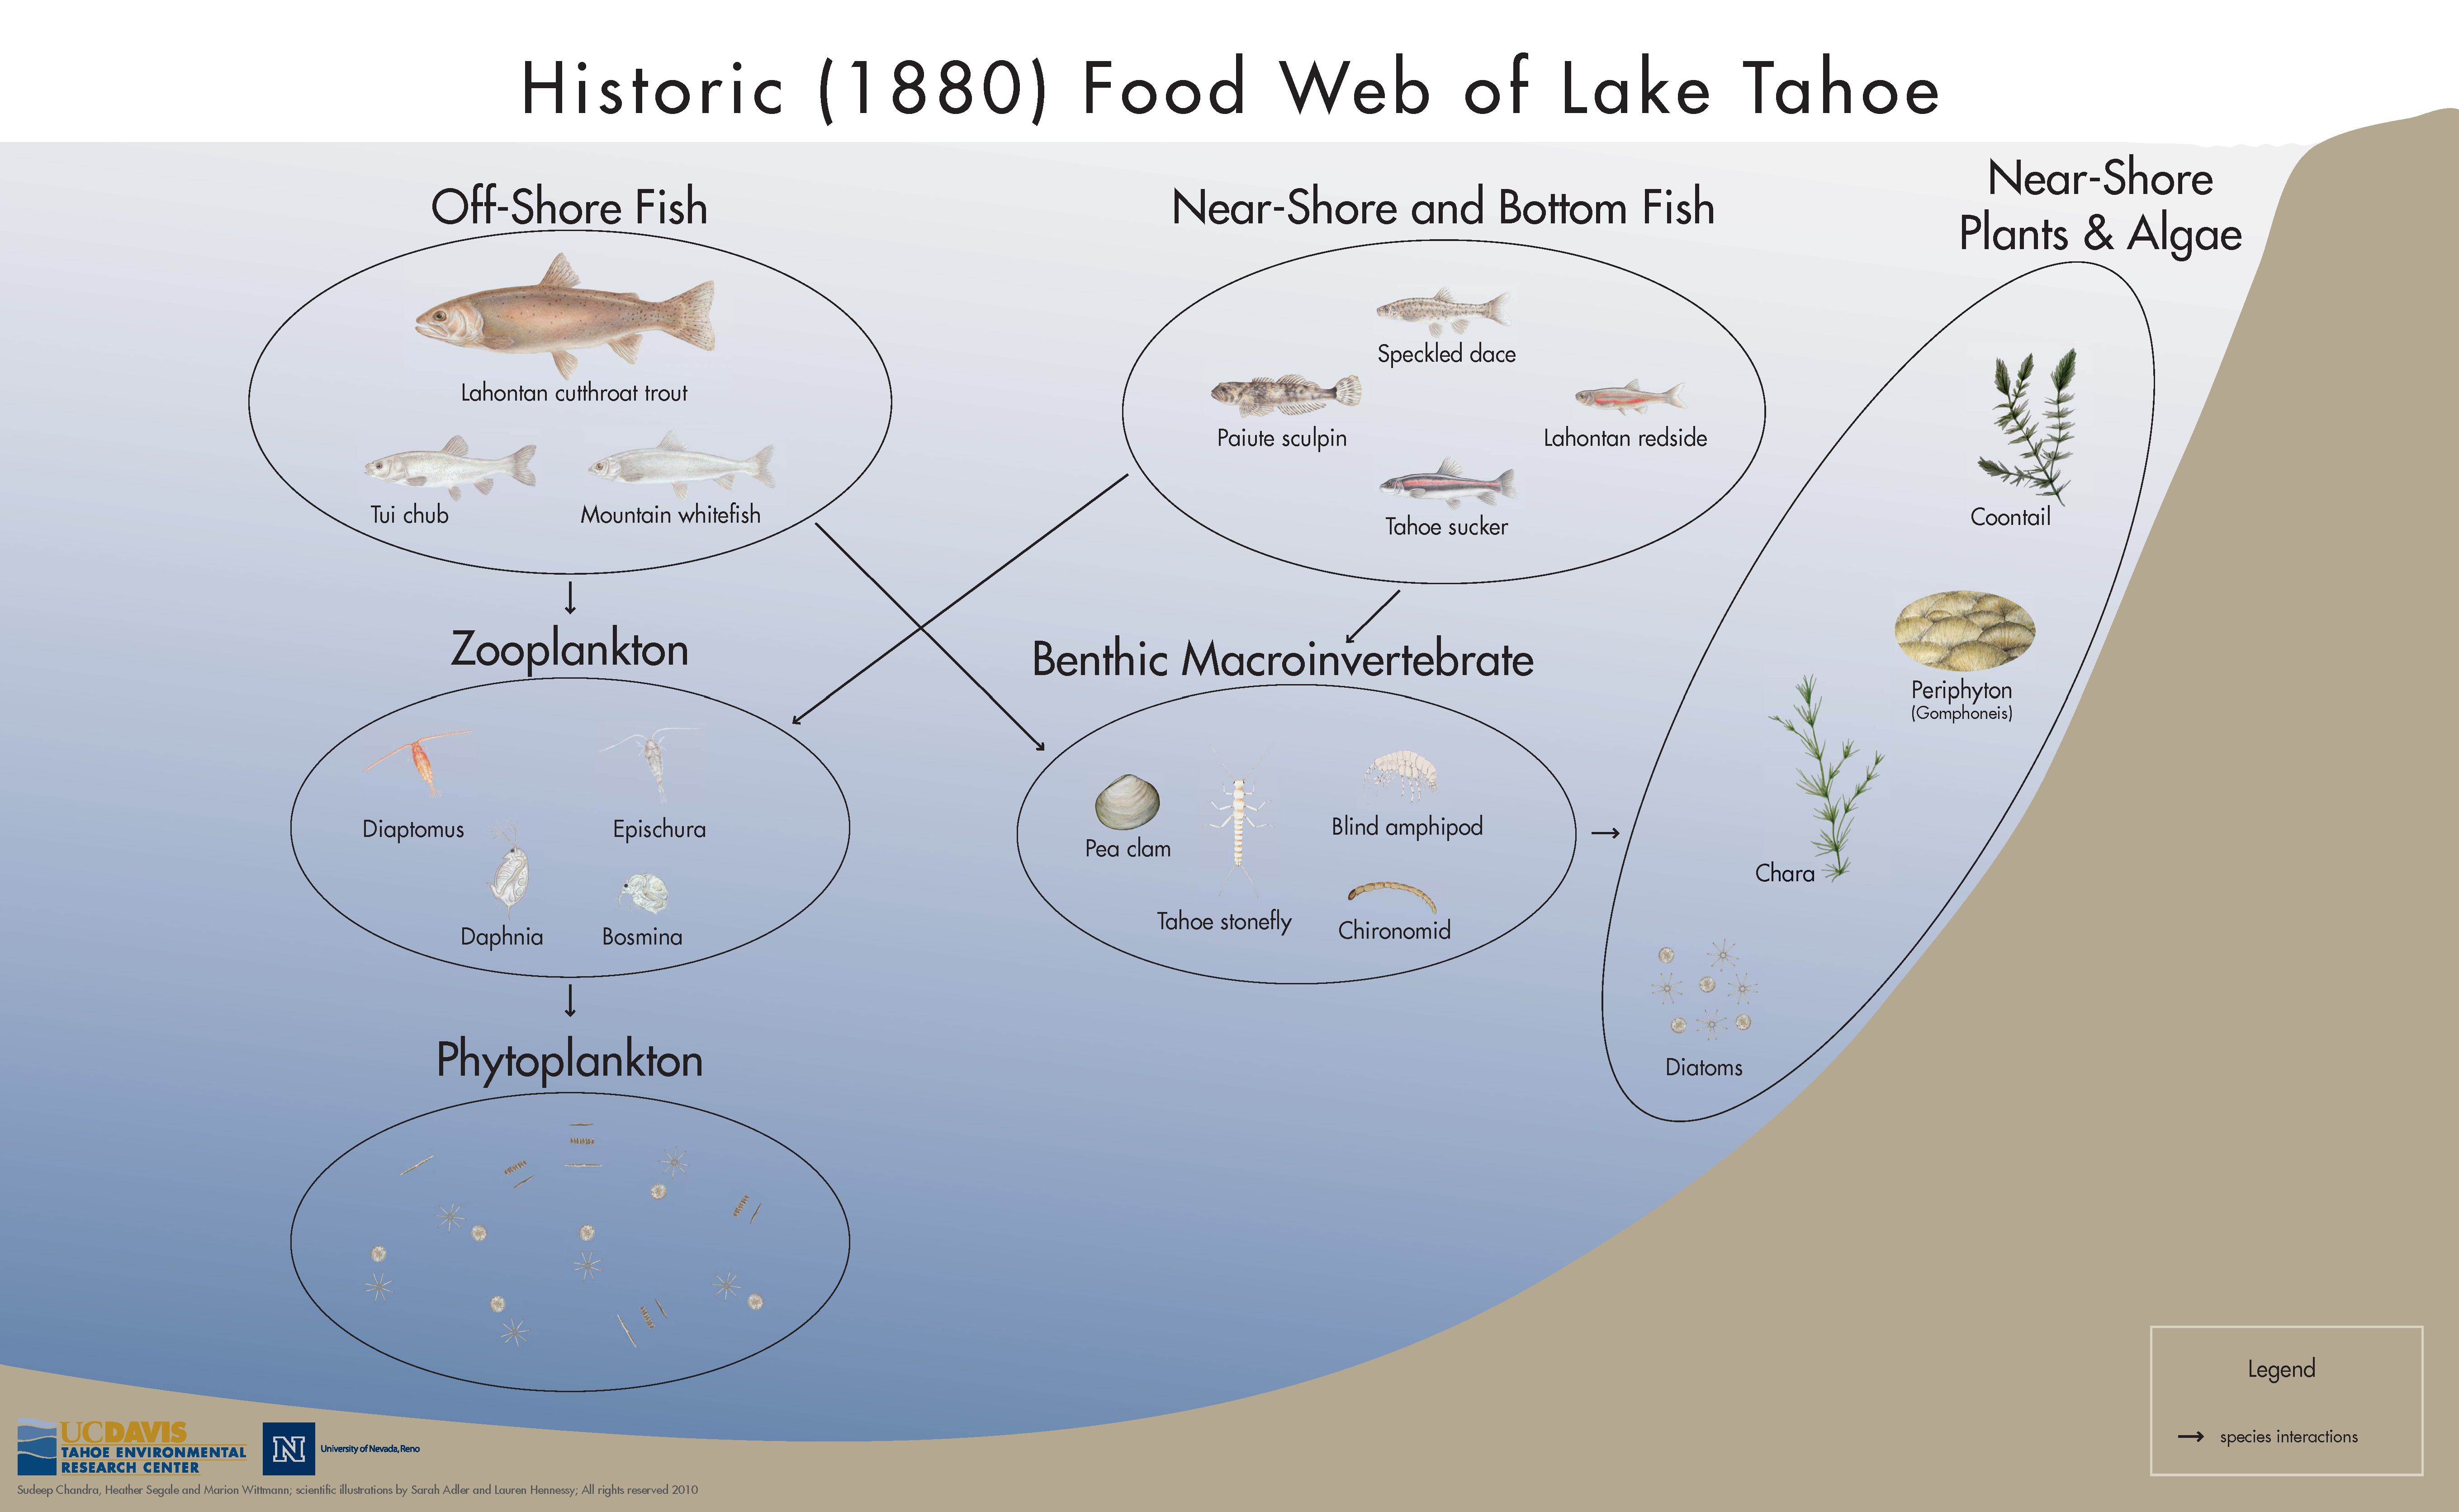 Lake Tahoe Historic Foodweb